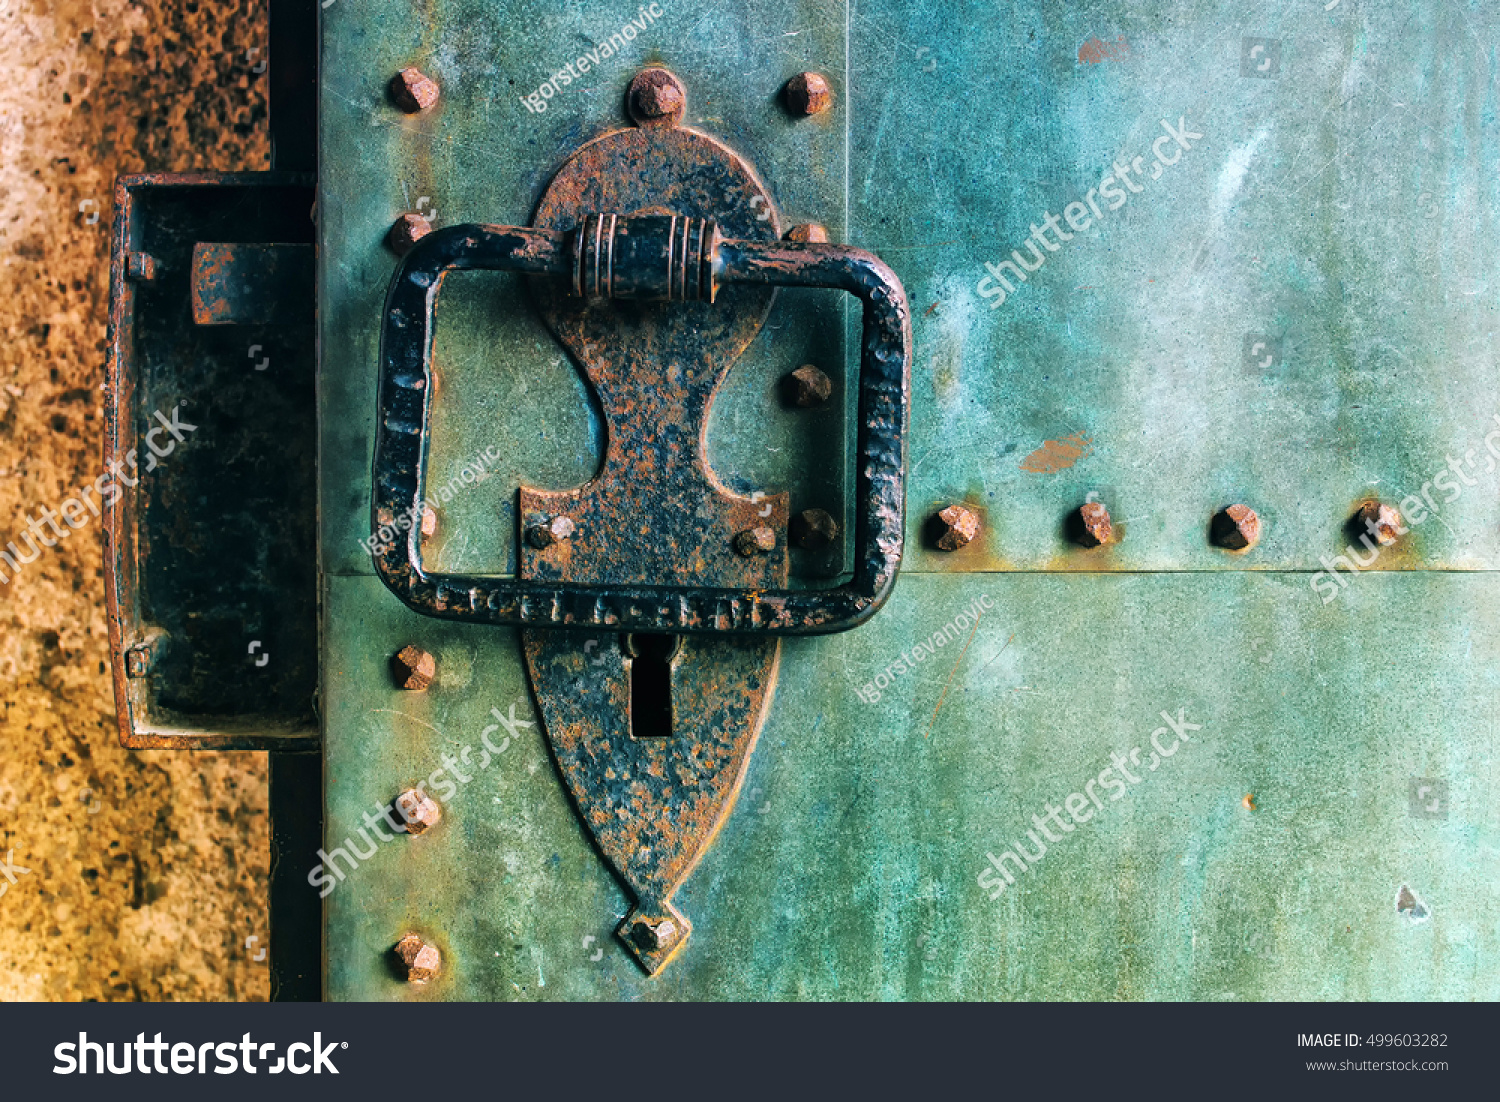 Old Rustic Copper Metal Castle Door With Large Knocker Weathered Surface Texture